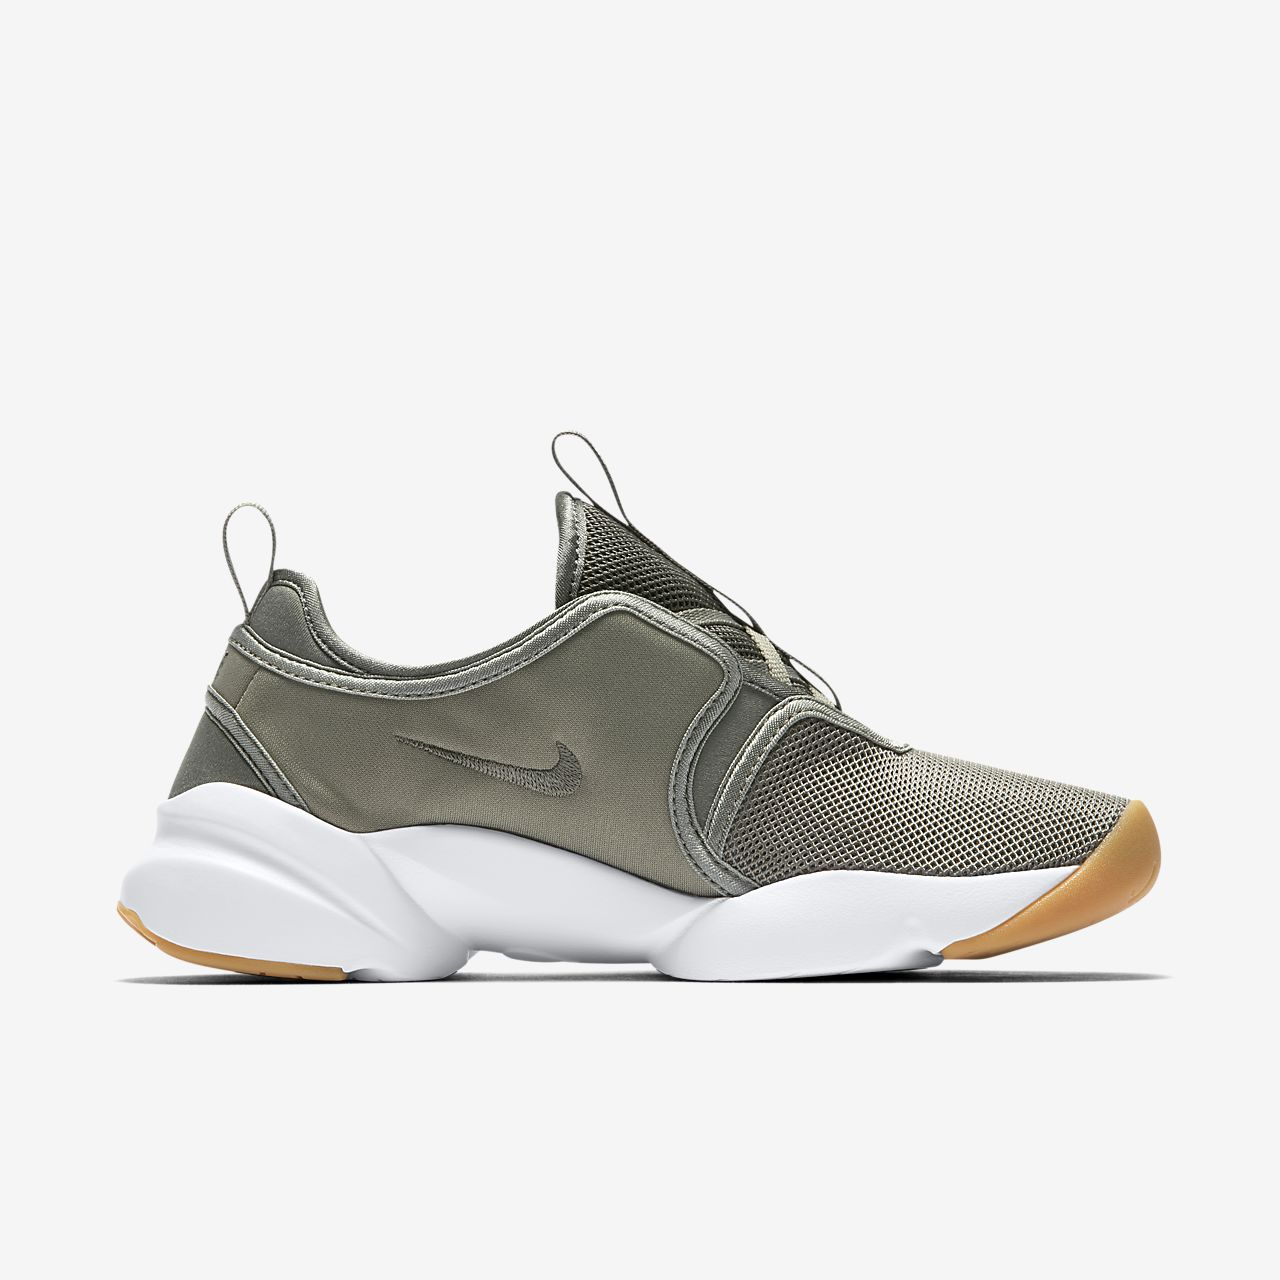 Nike Loden Womens Trainers New Size Uk 7